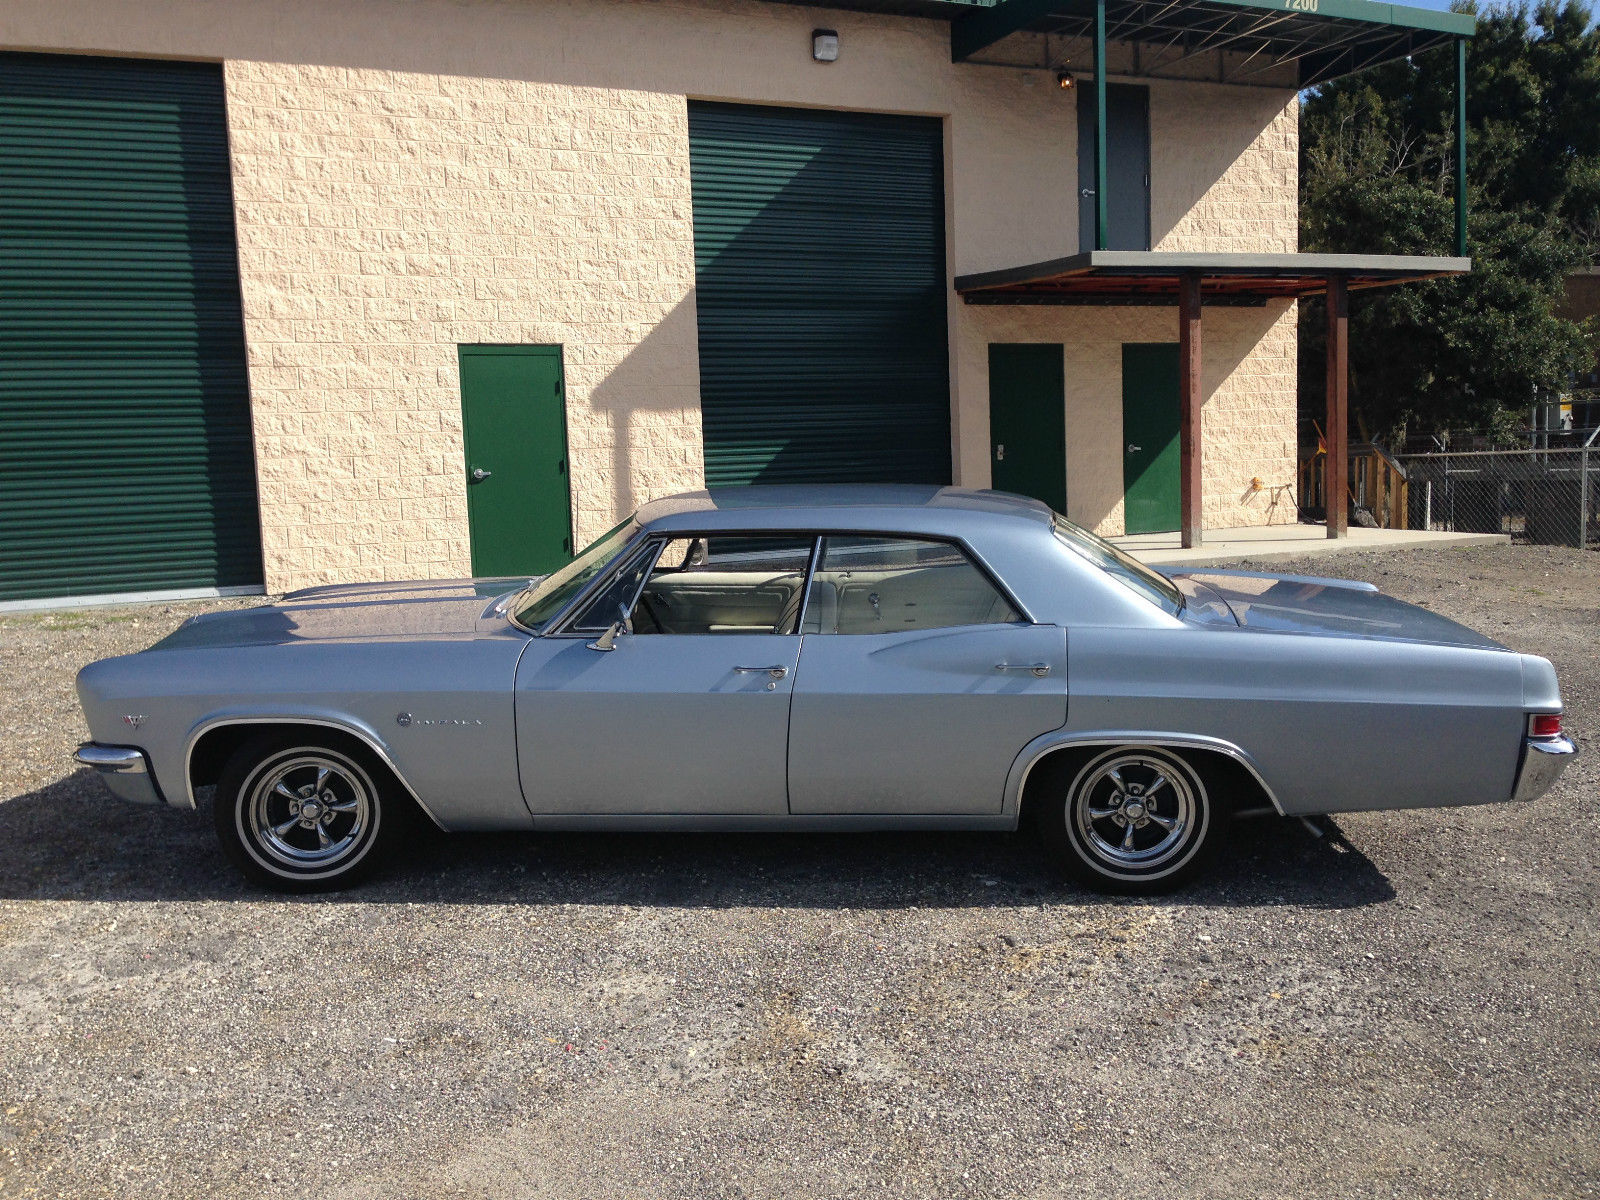 1966 chevy impala 4 door hardtop for sale in tampa florida united states. Black Bedroom Furniture Sets. Home Design Ideas